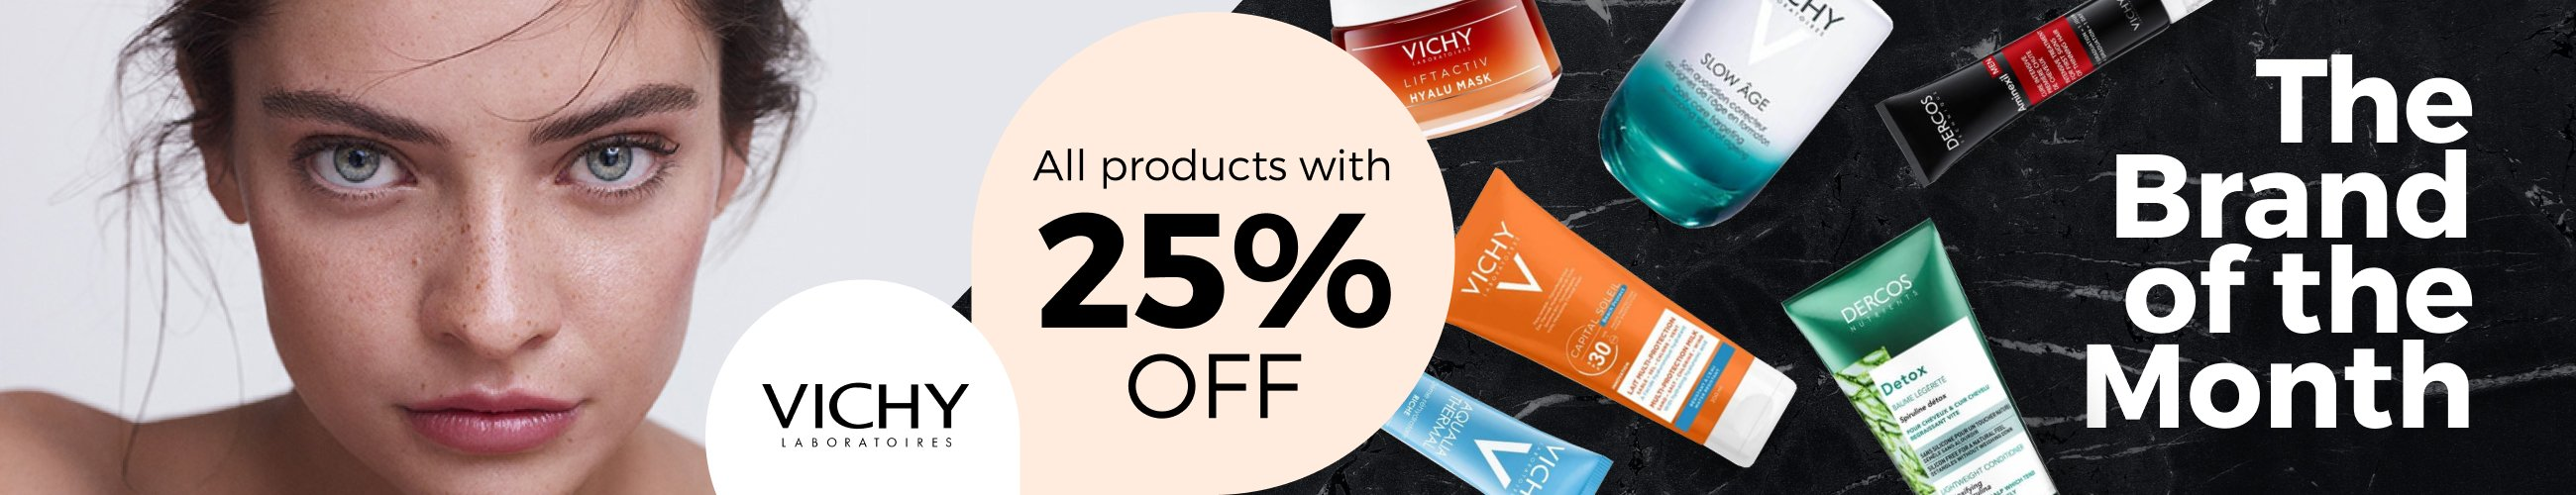 Vichy Brand of the Month